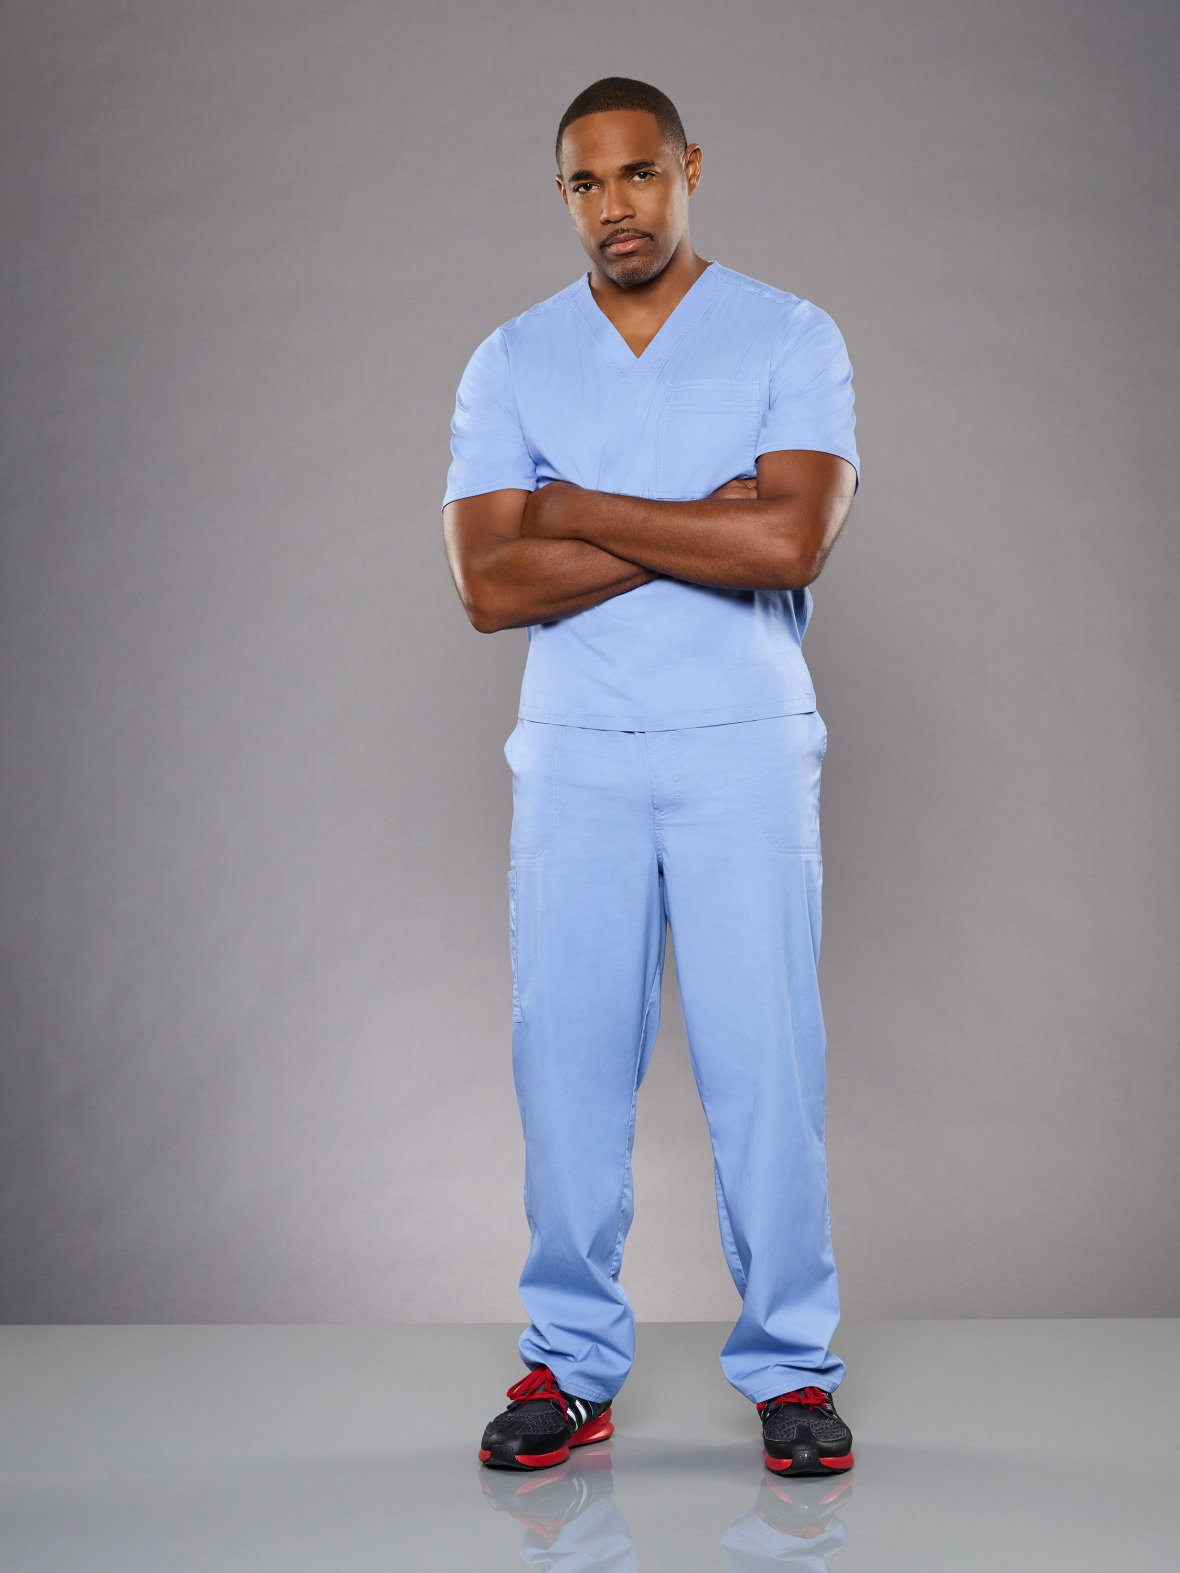 jason george 'grey's anatomy' getty images